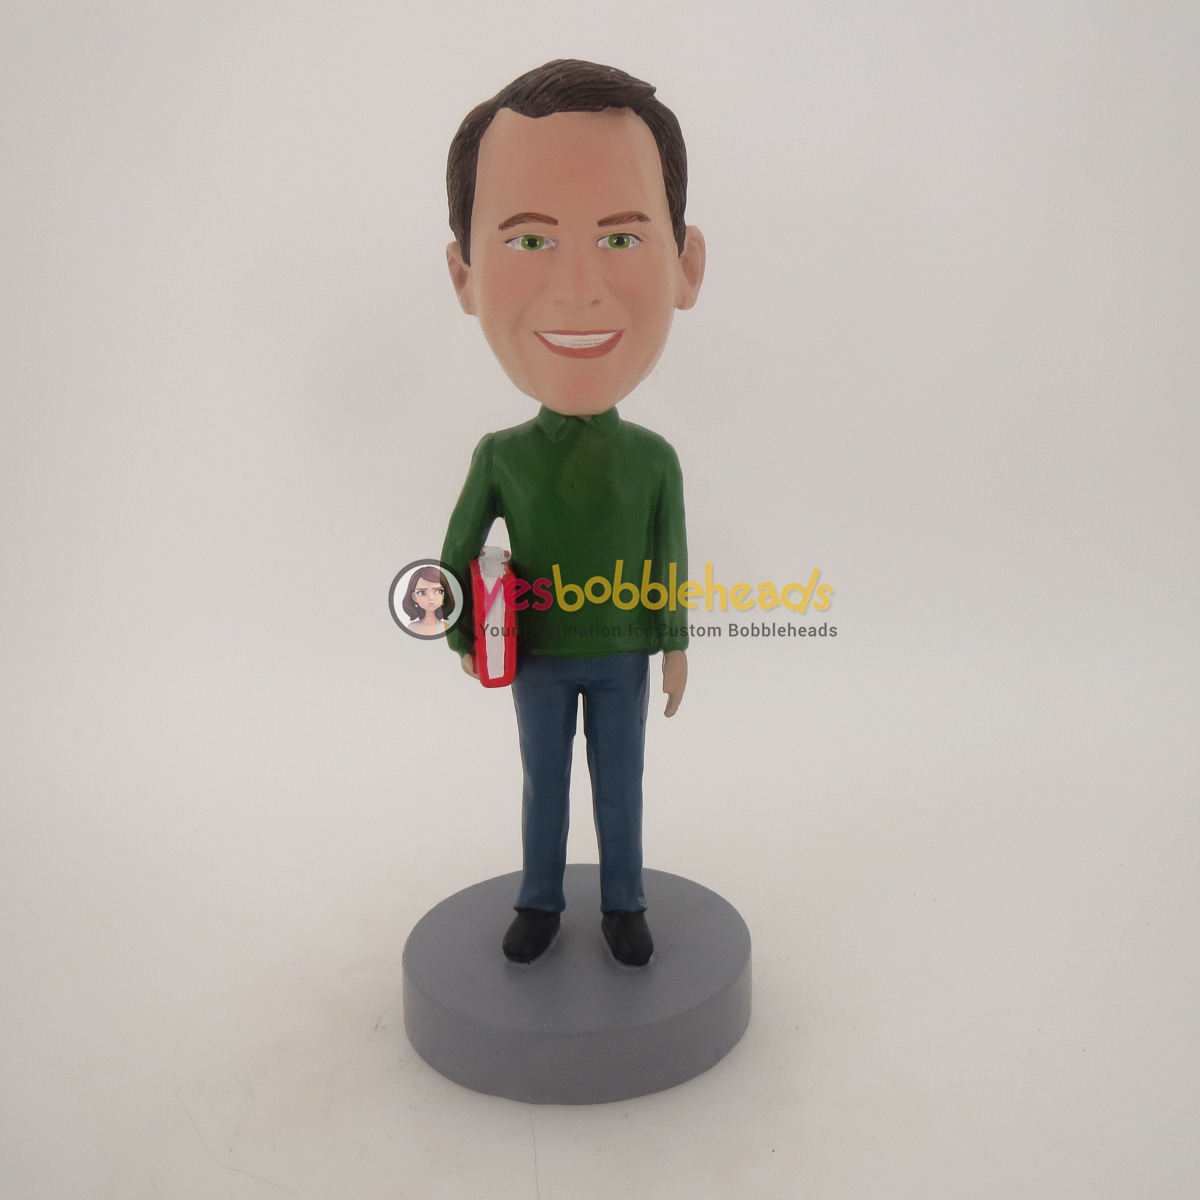 Picture of Custom Bobblehead Doll: Man Holding Big Book